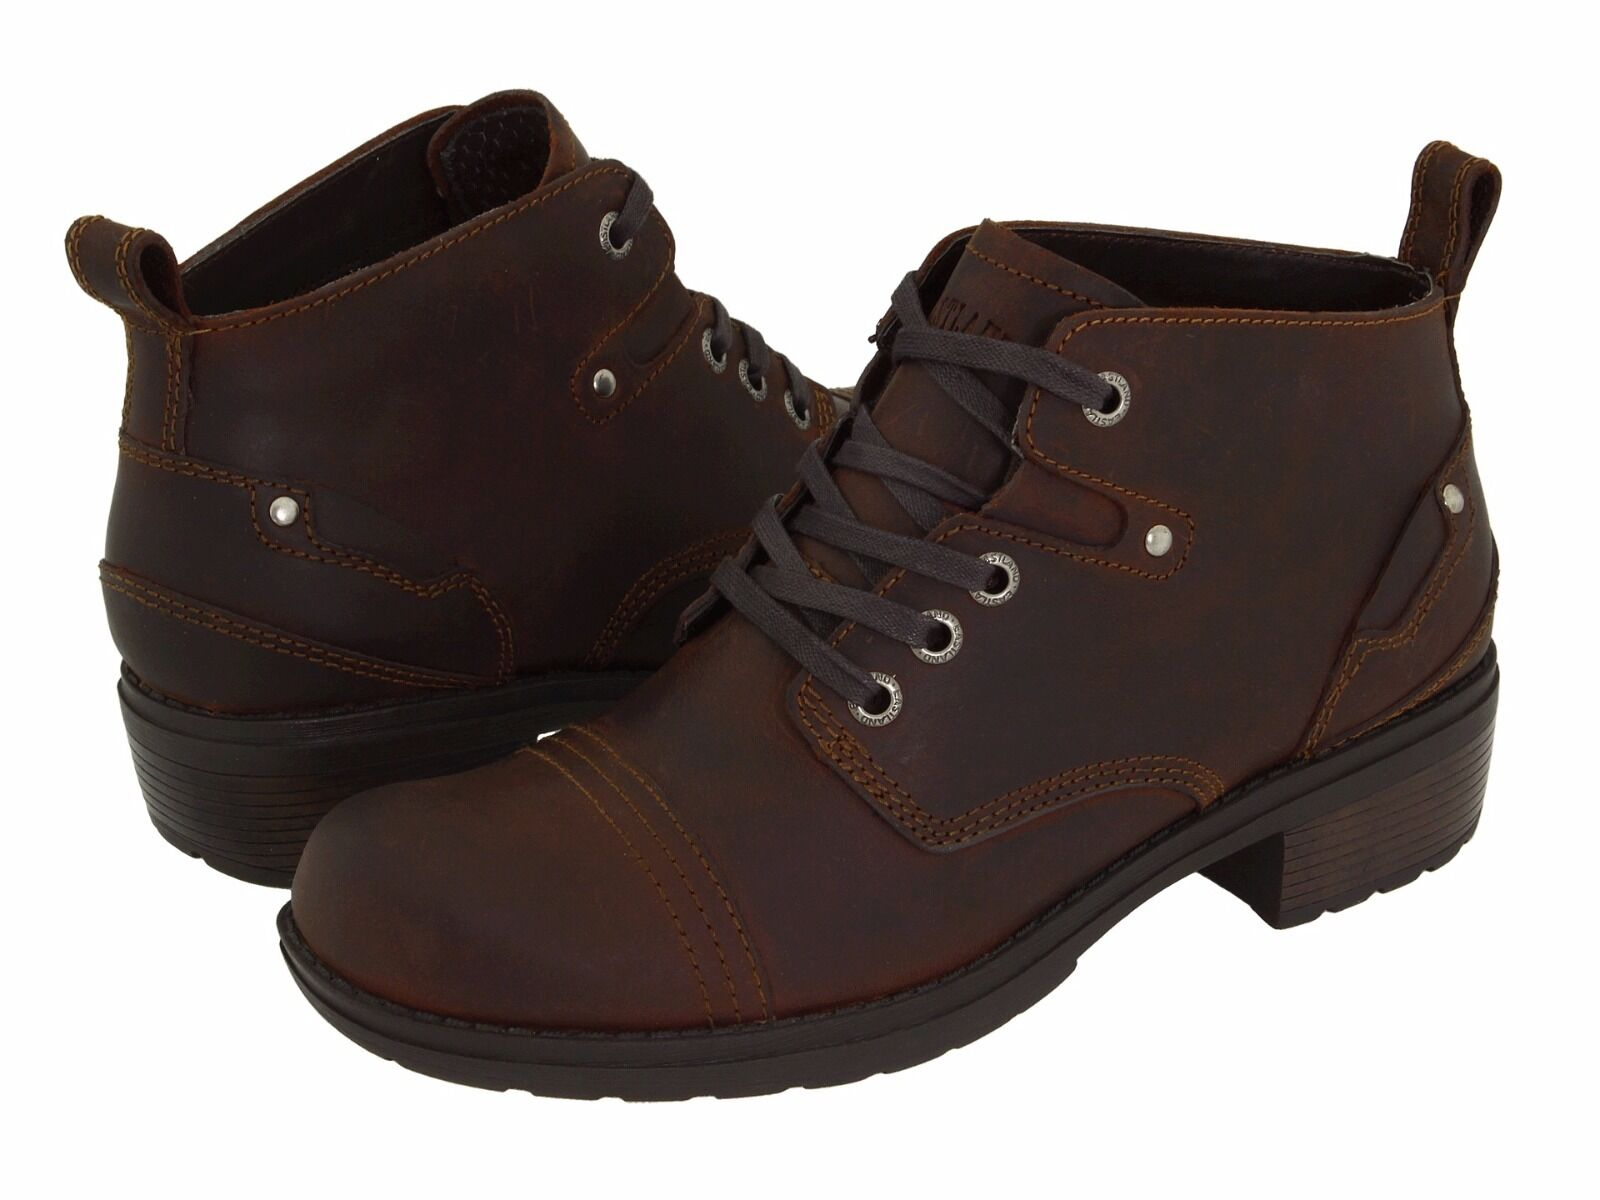 Eastland Women's Overdrive Ankle Brown Leather Boot Boot Boot Boots 3138 58c7d8